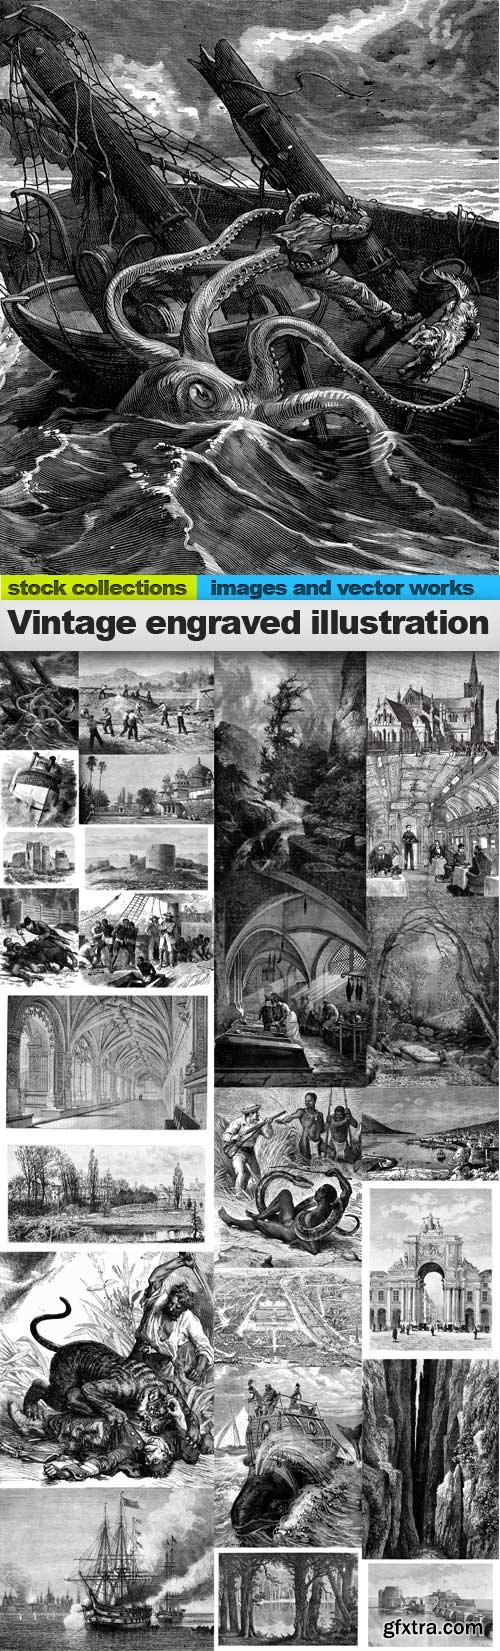 Vintage engraved illustration images,25 x UHQ JPEG